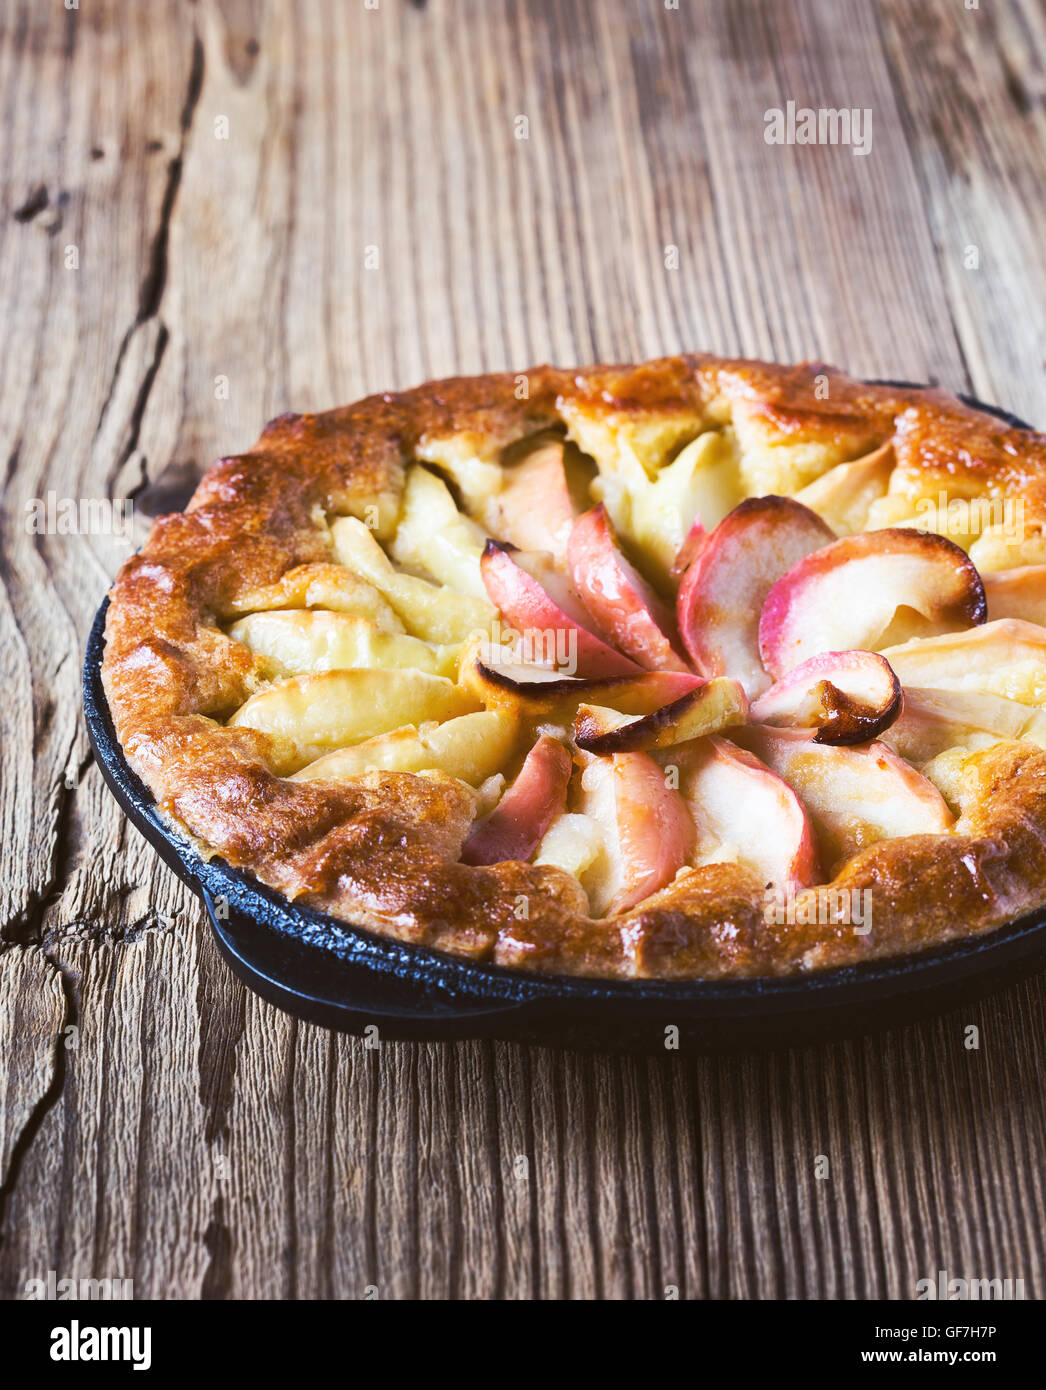 Homemade apple pie cooked in a frying pan and ripe apples on rustic wooden table - Stock Image